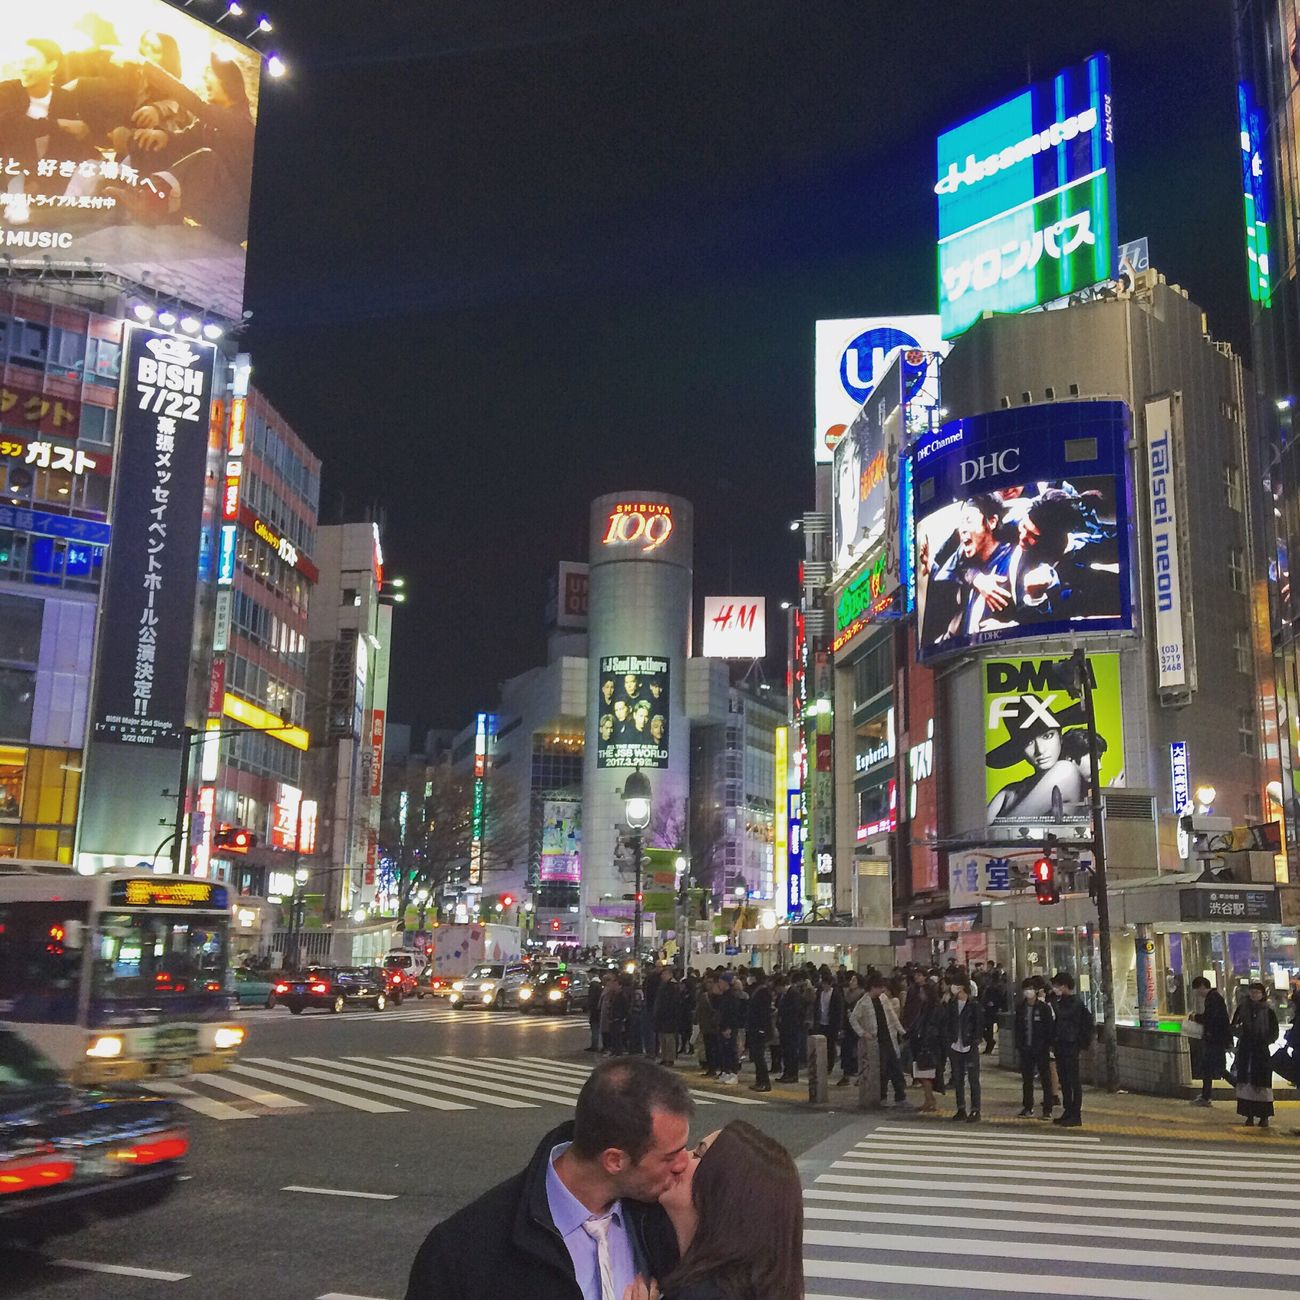 A Kiss at Shibuya Night City Illuminated Travel Destinations Japan Japan Photography Shibuya People Nightlife Couple Streetphotography Street Photography Love Kiss Architecture Outdoors Sky Crowd Adults Only Adult